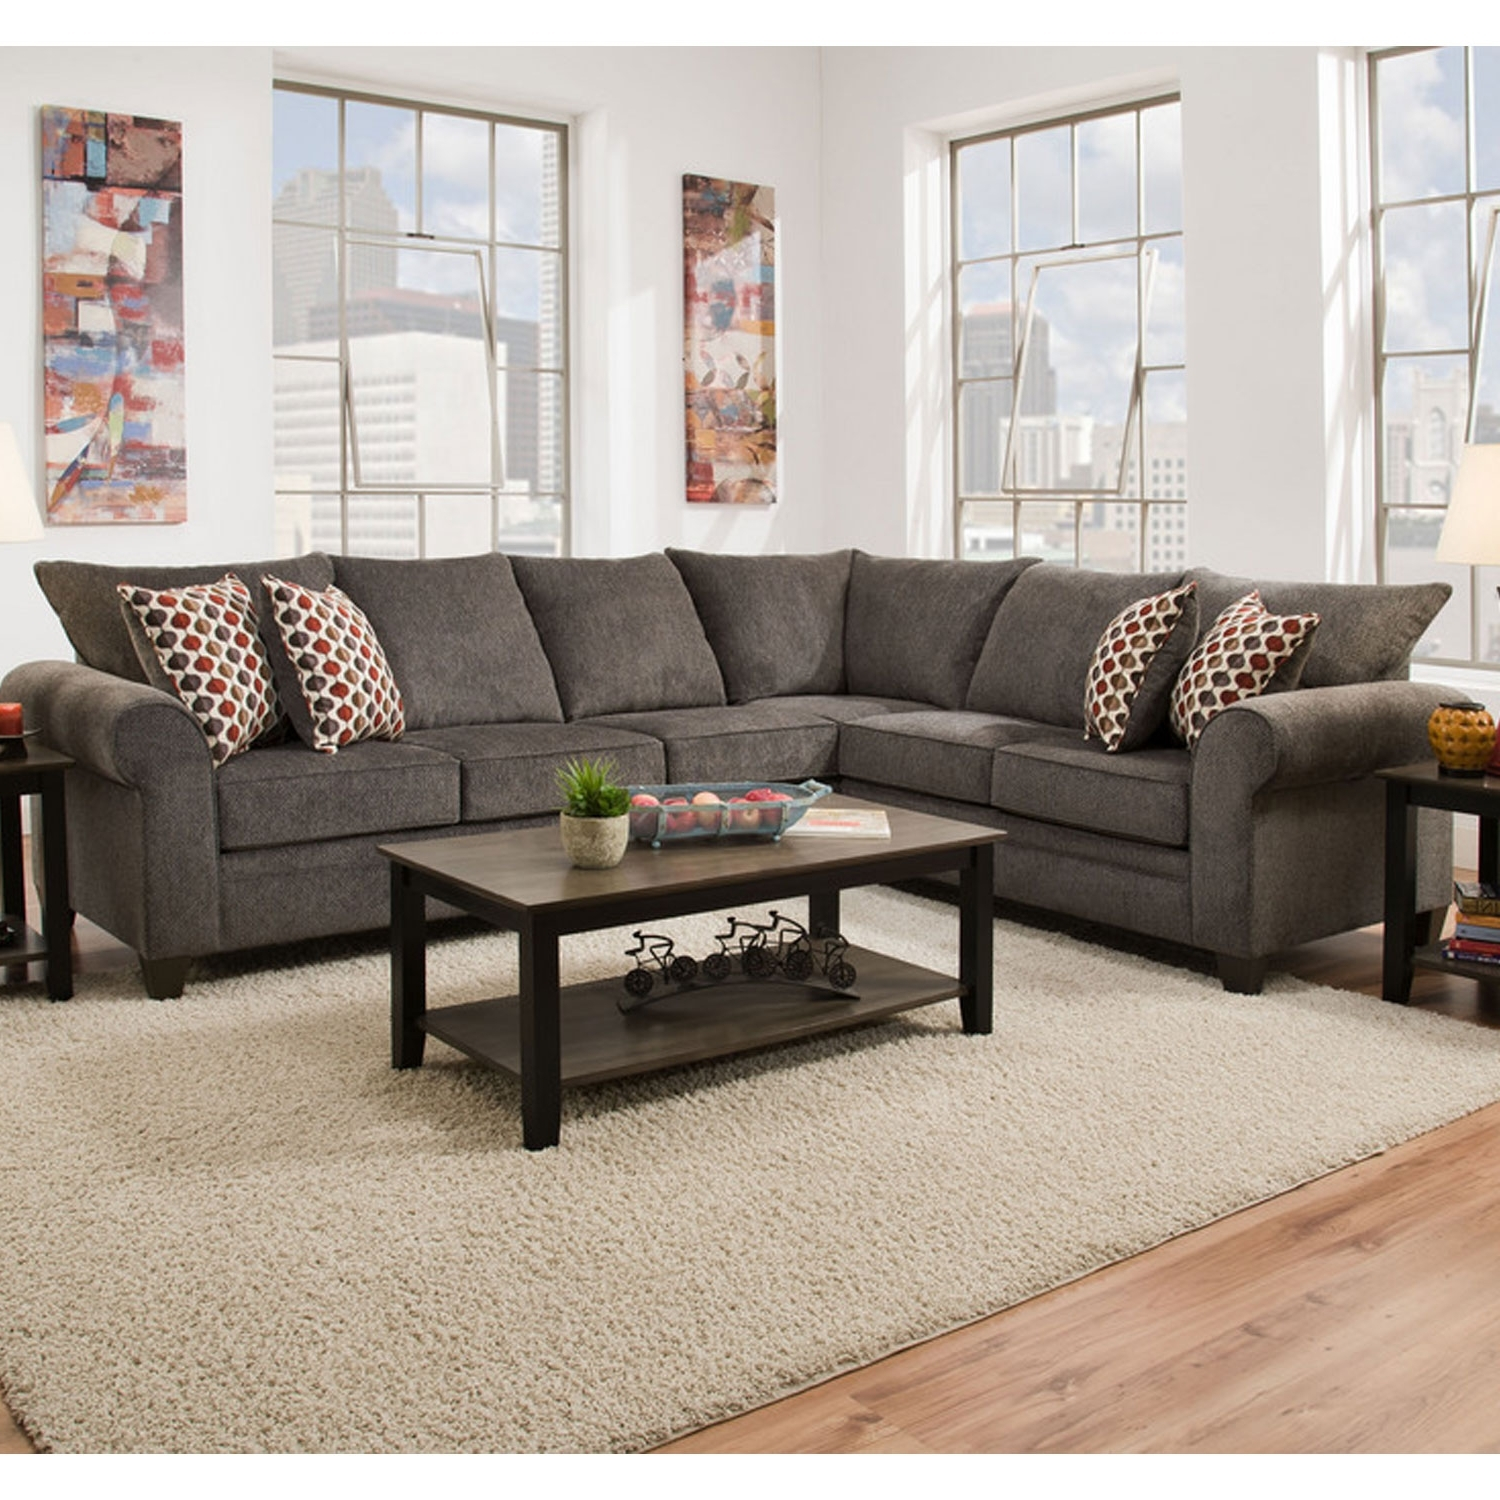 Simmons 1647 Sectional Sofa Albany Pewter (View 12 of 20)